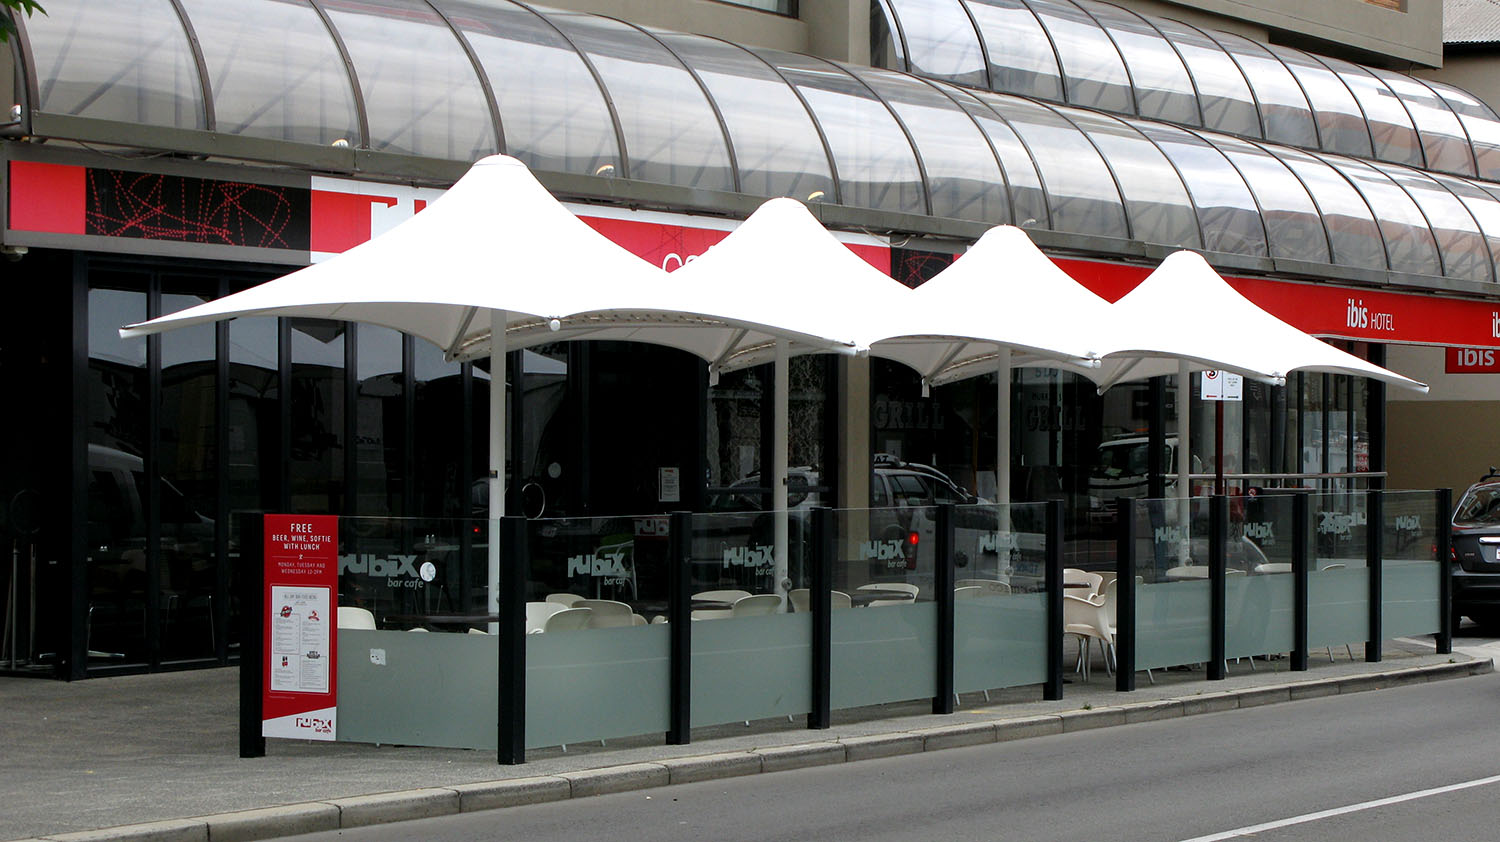 COMMERCIAL UMBRELLAS AND ARCHITECTURAL UMBRELLAS